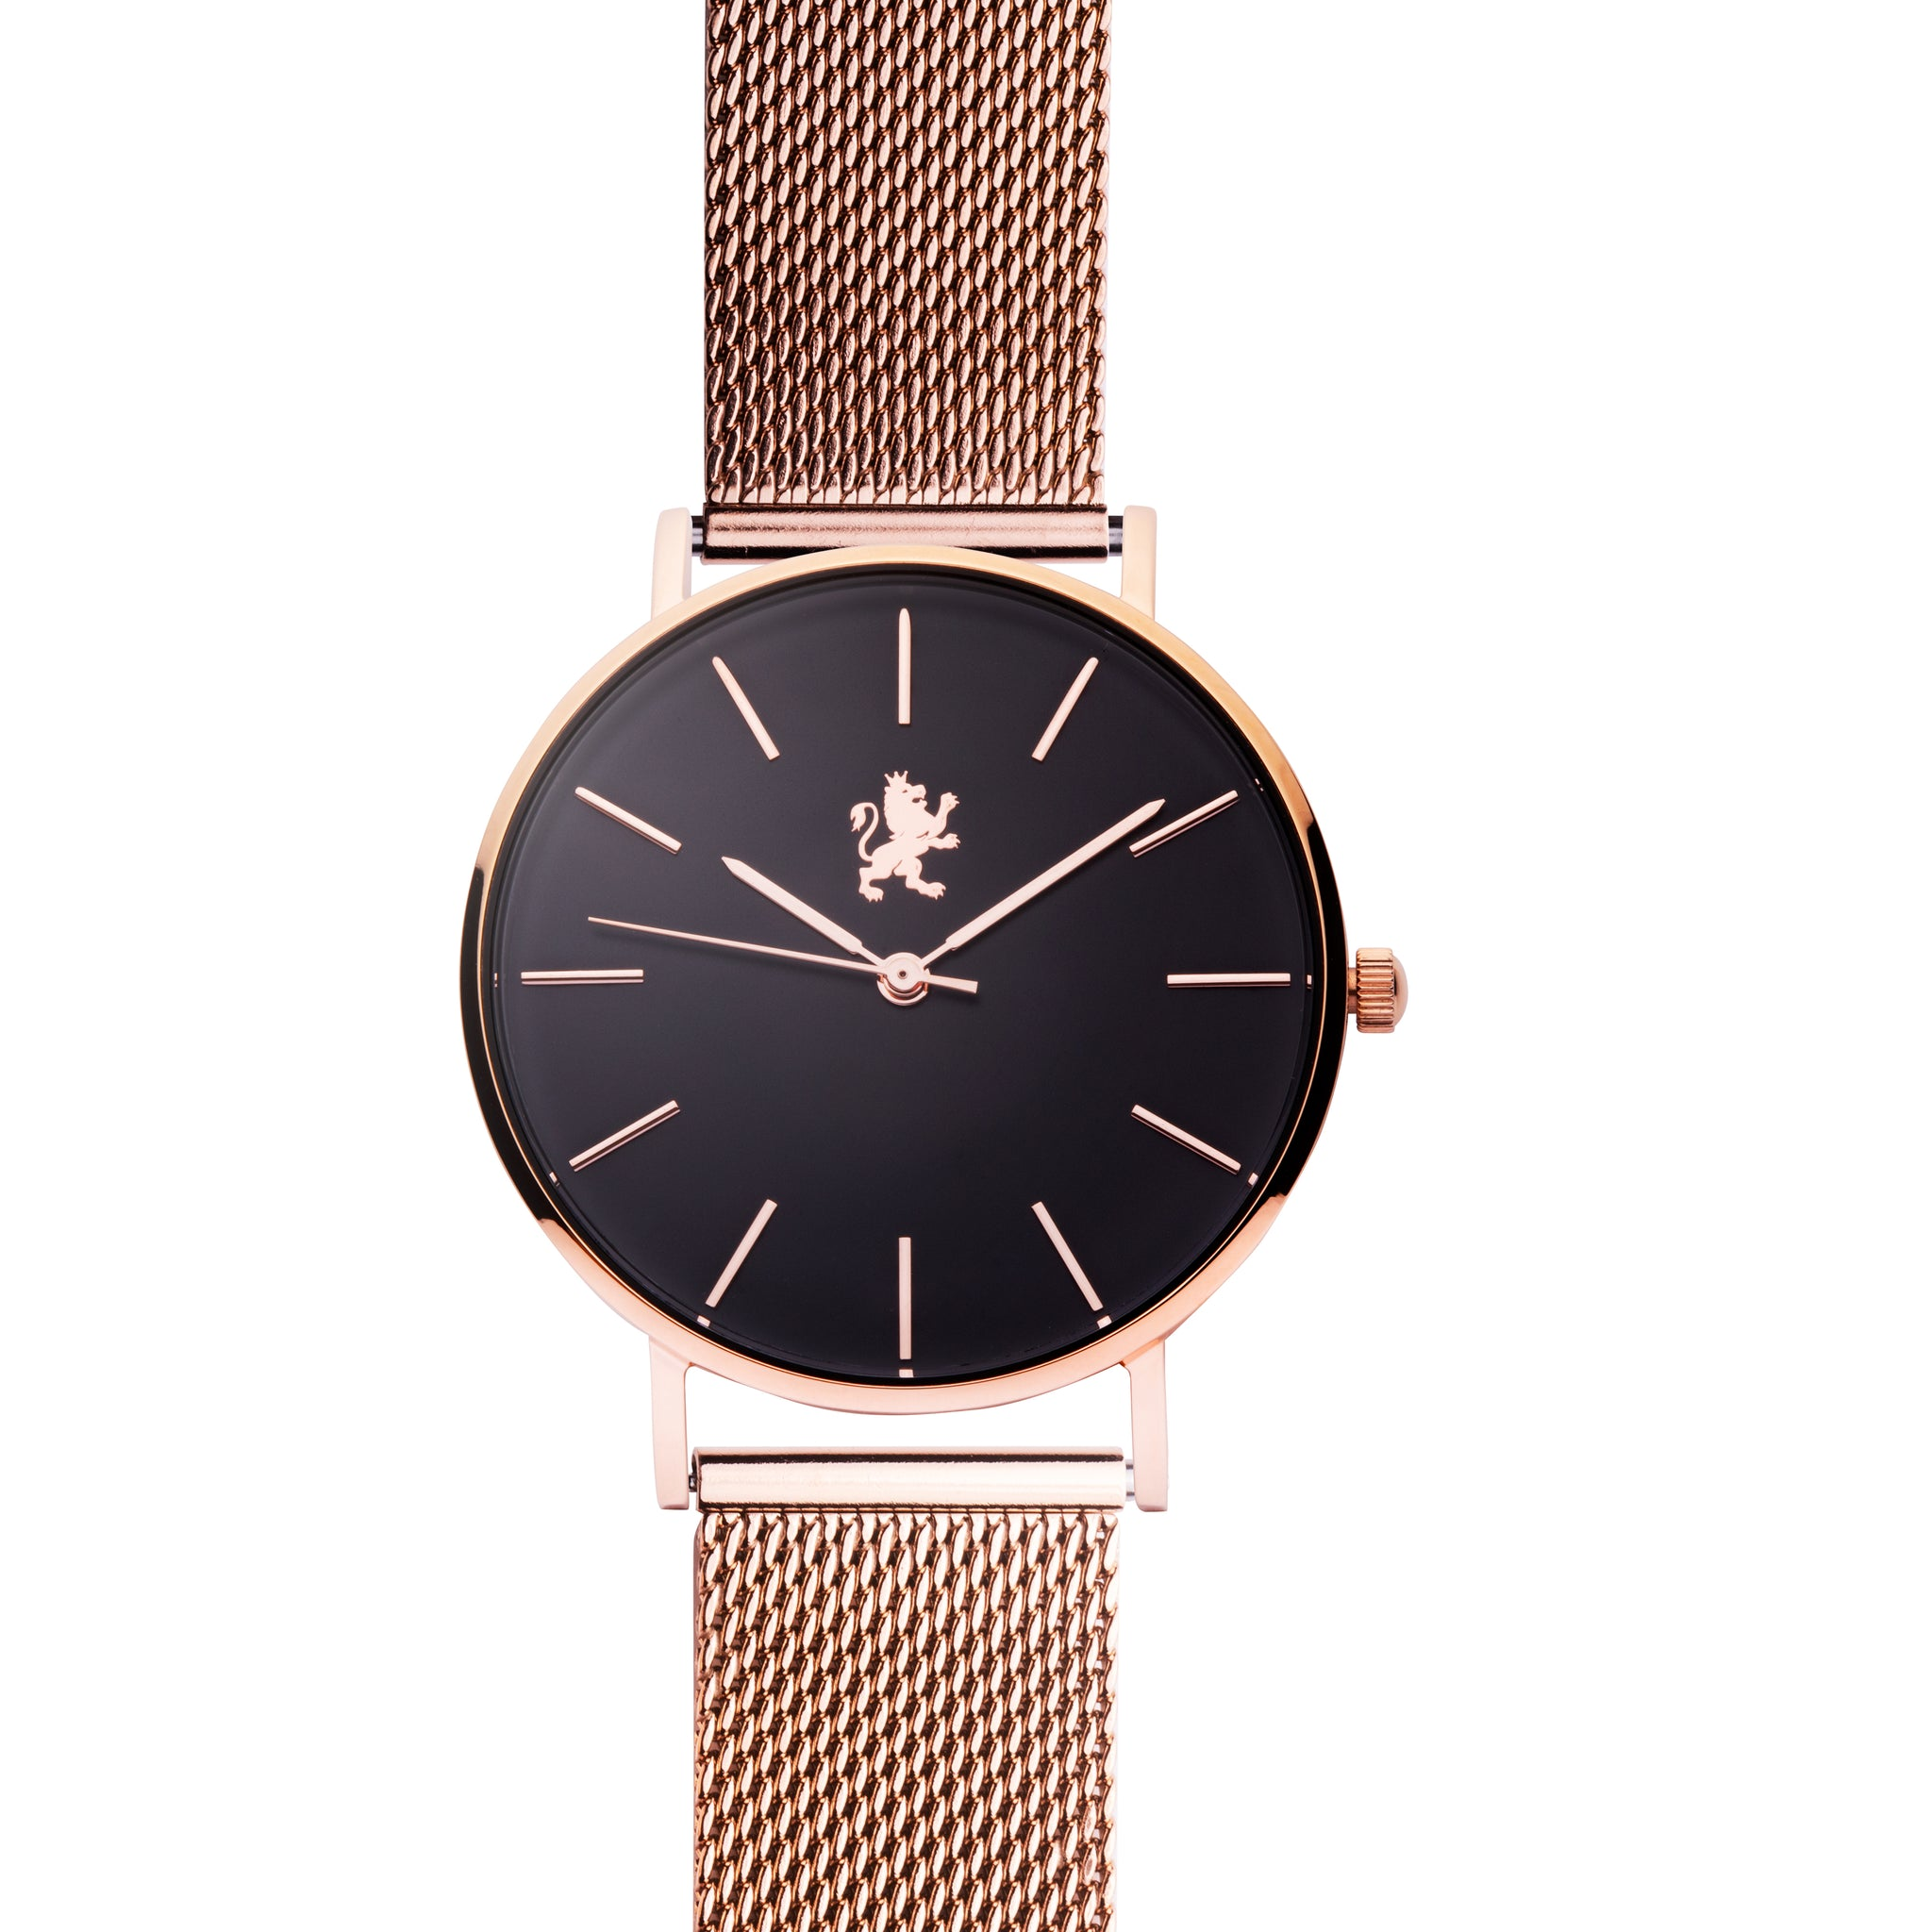 Black Rose with Rose Gold Mesh Bracelet - Samuel James Watches